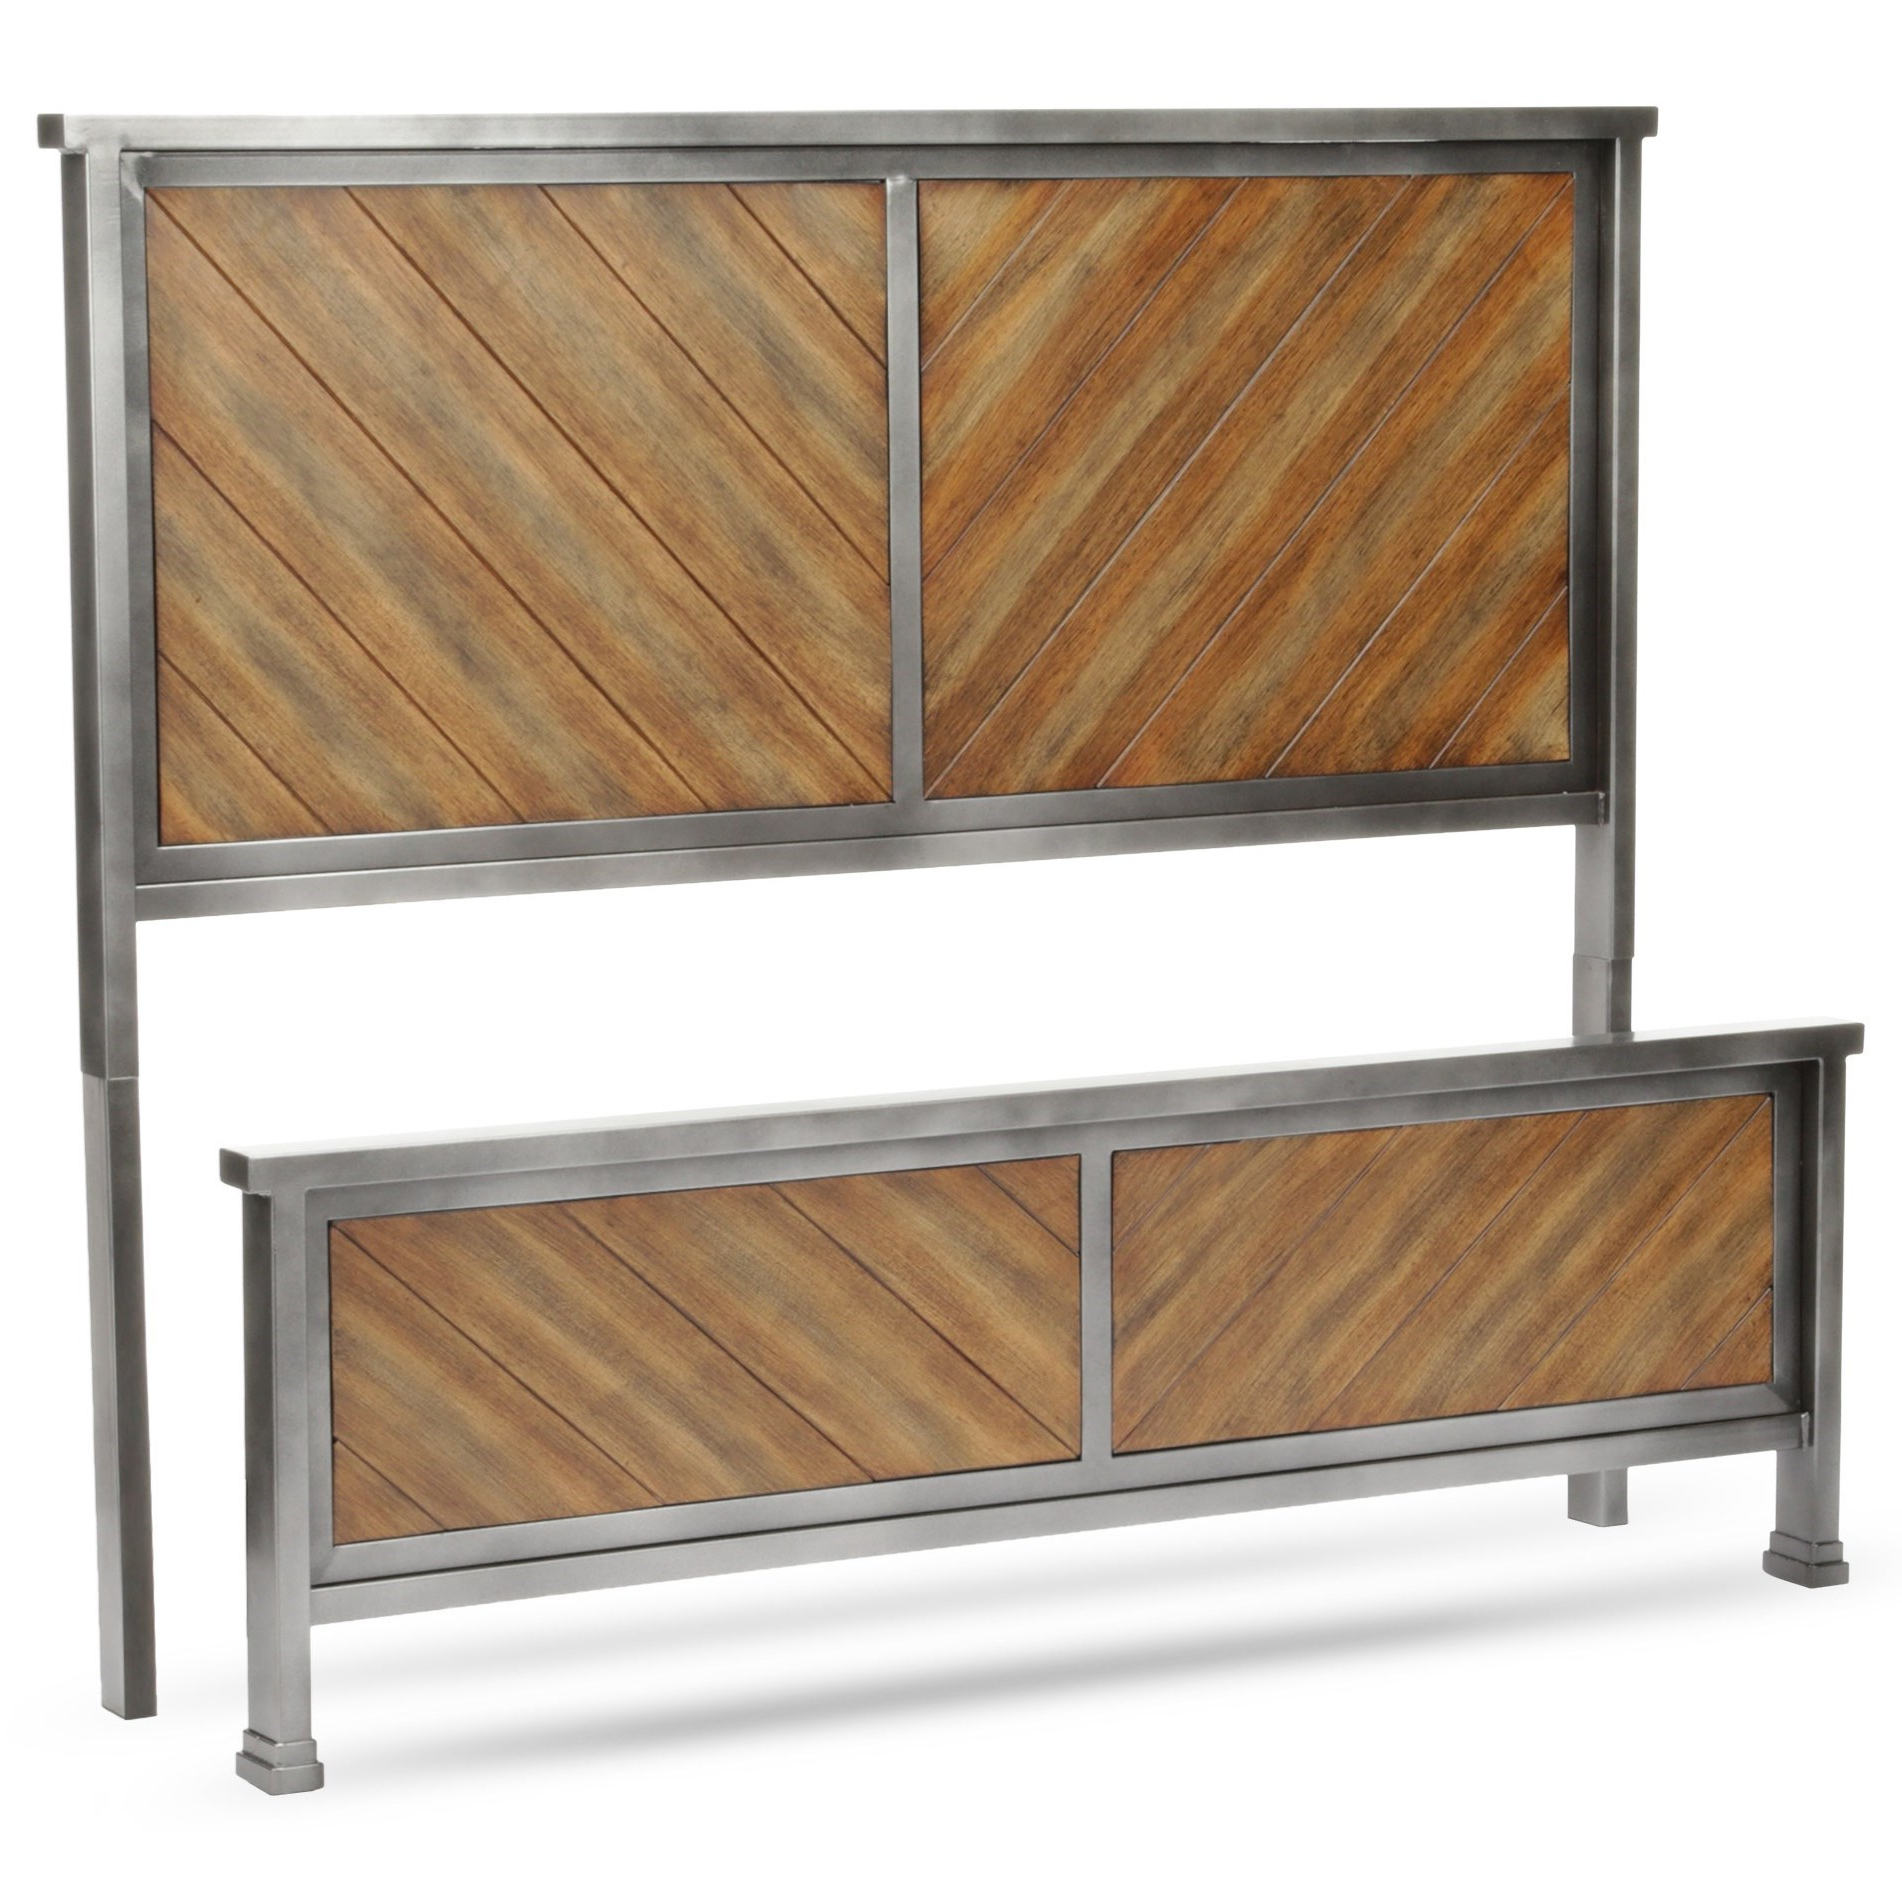 Reclaimed Sideboards With Metal Panel Within Most Recently Released Fashion Bed Group Braden Braden Full Headboard And Footboard With (View 15 of 20)